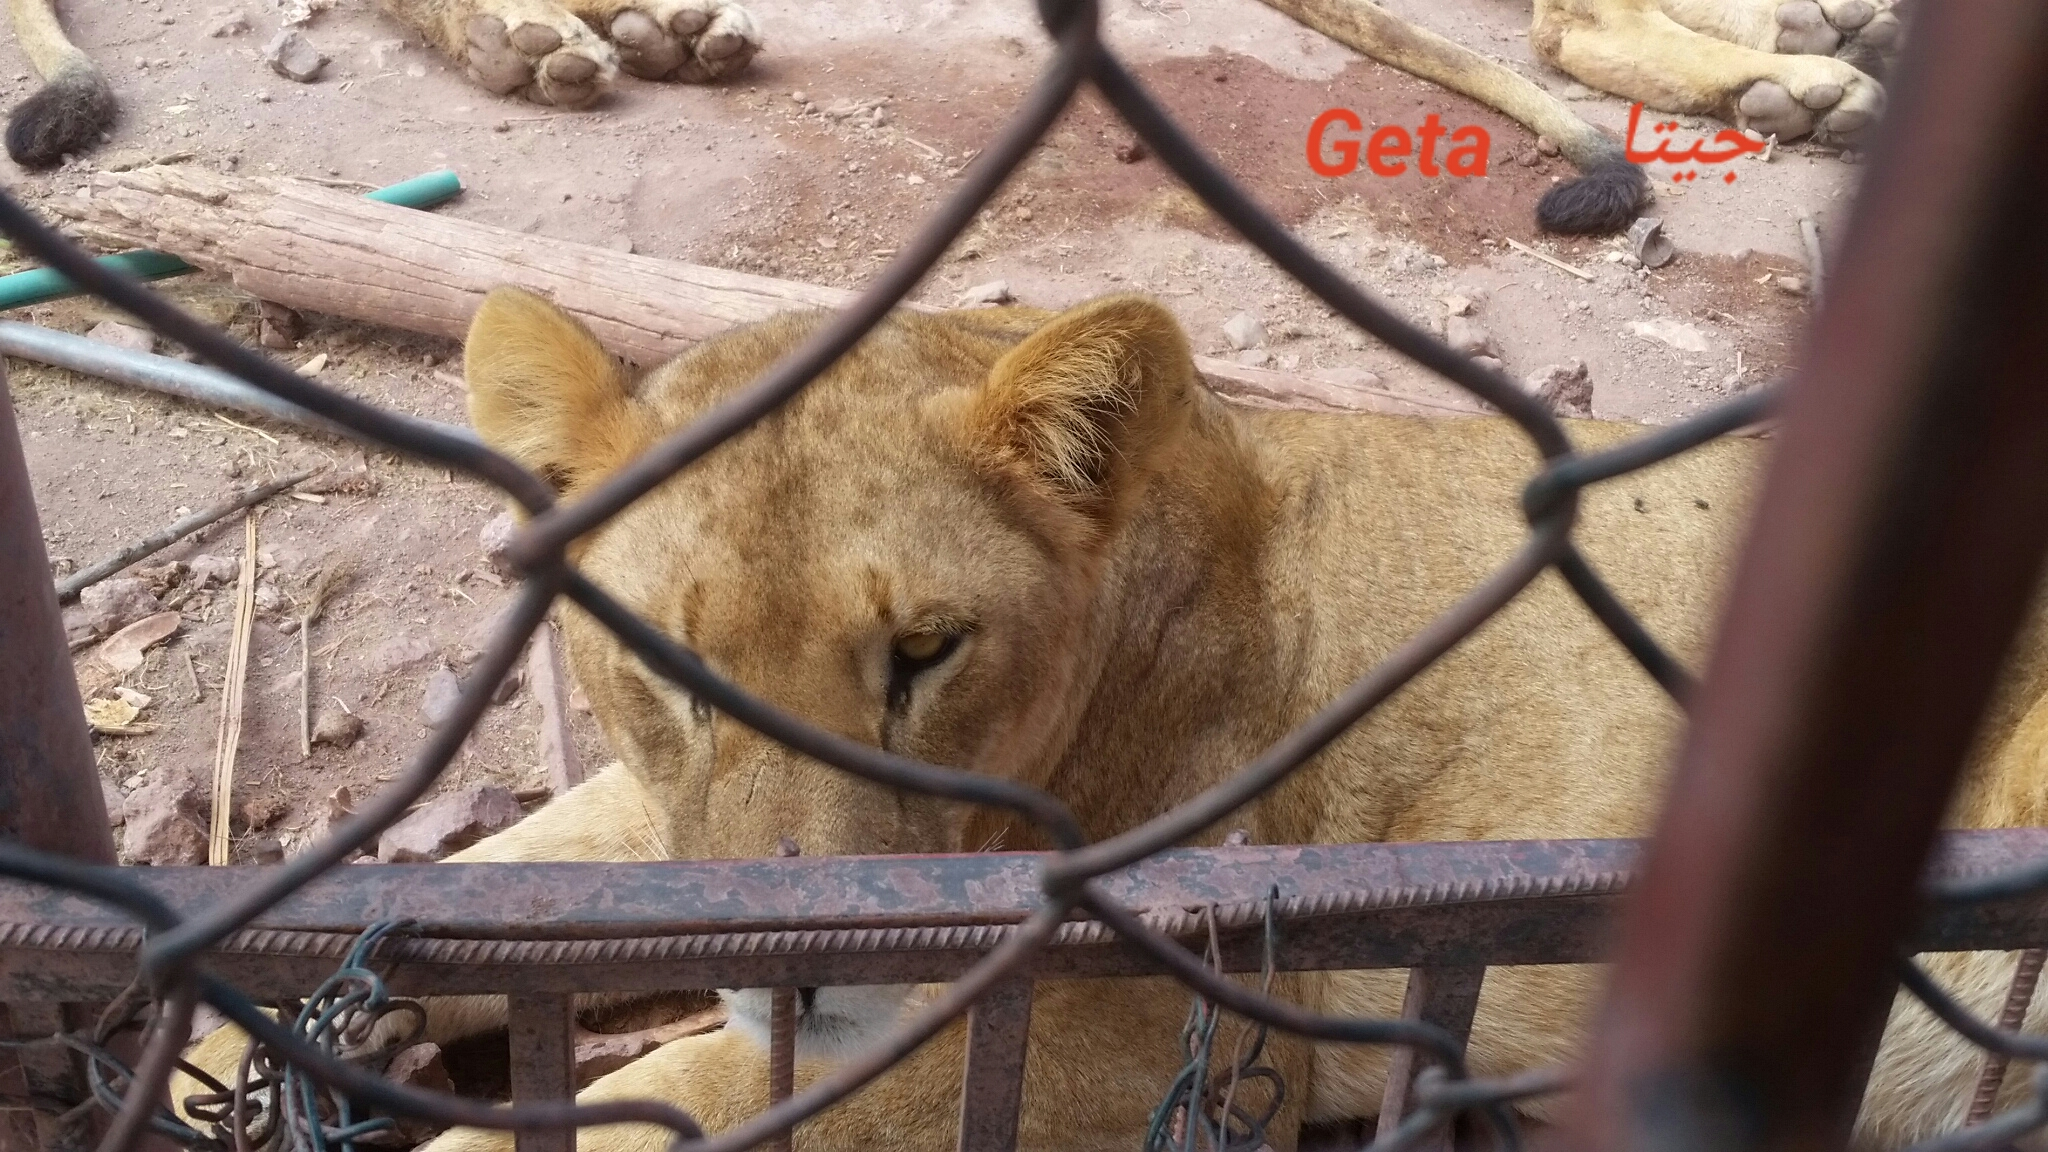 Ibb Zoo GETA lion  name 7 NOV 2018 by OWAP AR Hisham photo yemen.jpg